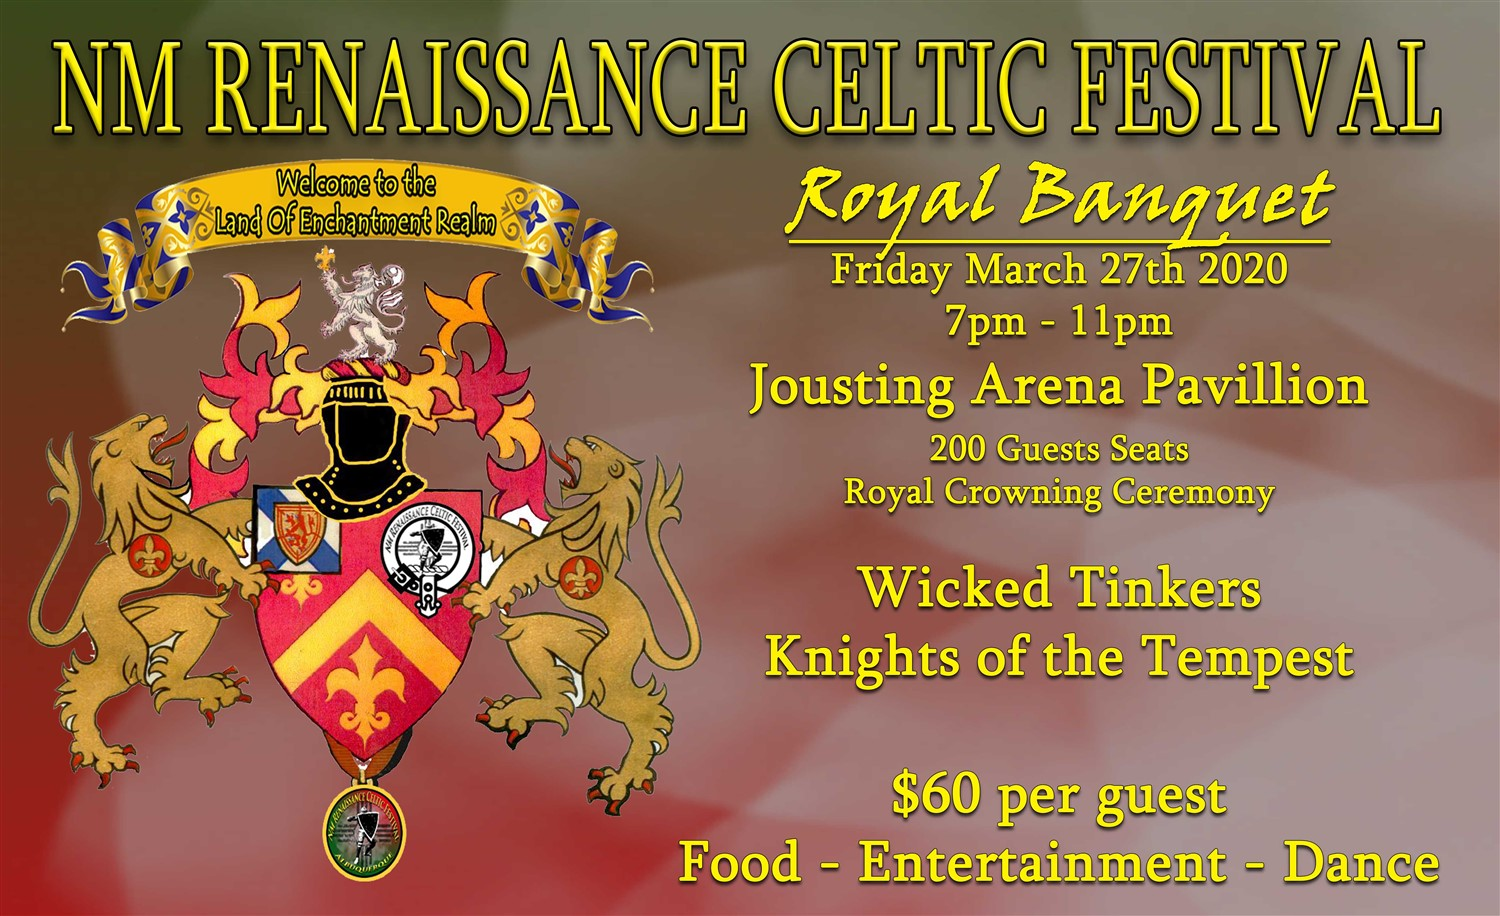 Royal Banquet - Crowning of the Royals Medieval Dinner -Royalty-Entertainment-Dancing on Mar 27, 19:00@Jousting Arena - Pick a seat, Buy tickets and Get information on NM Renaissance Celtic Festival